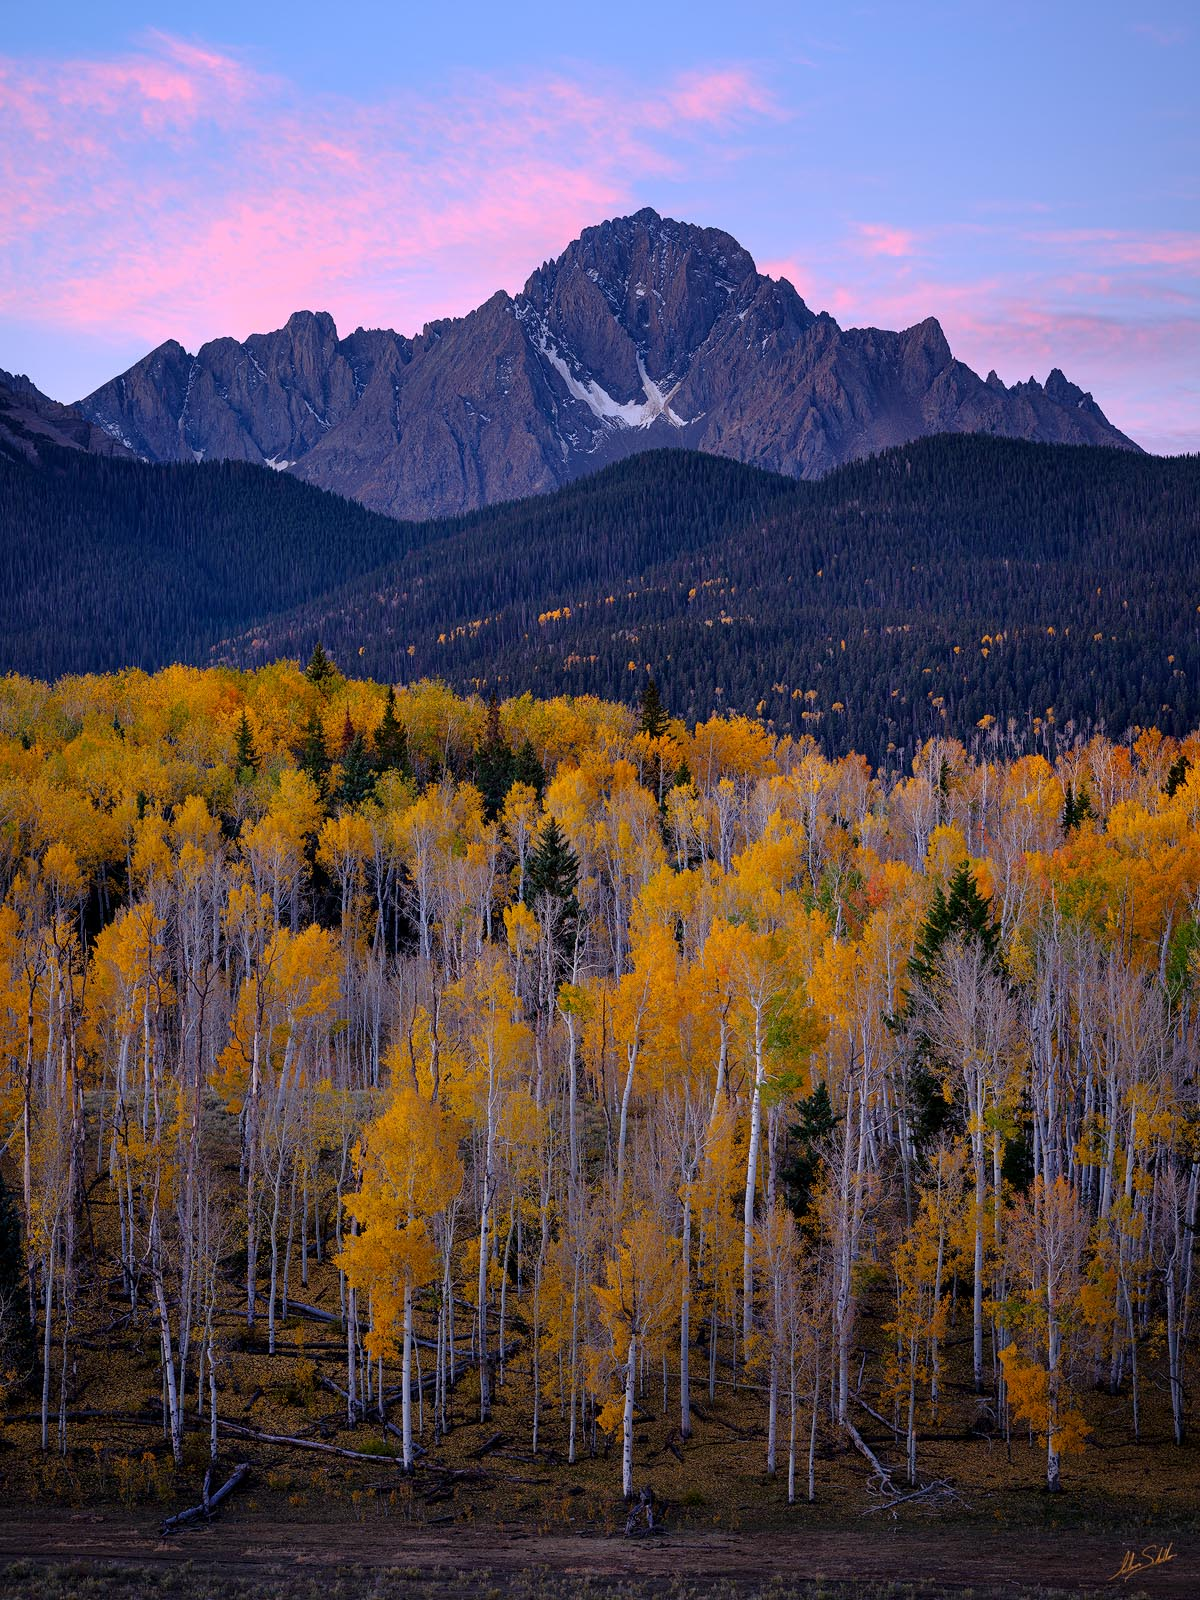 Mount Sneffels rises high above a stand of aspen trees with golden leaves as the distant sky is painted by early morning light...